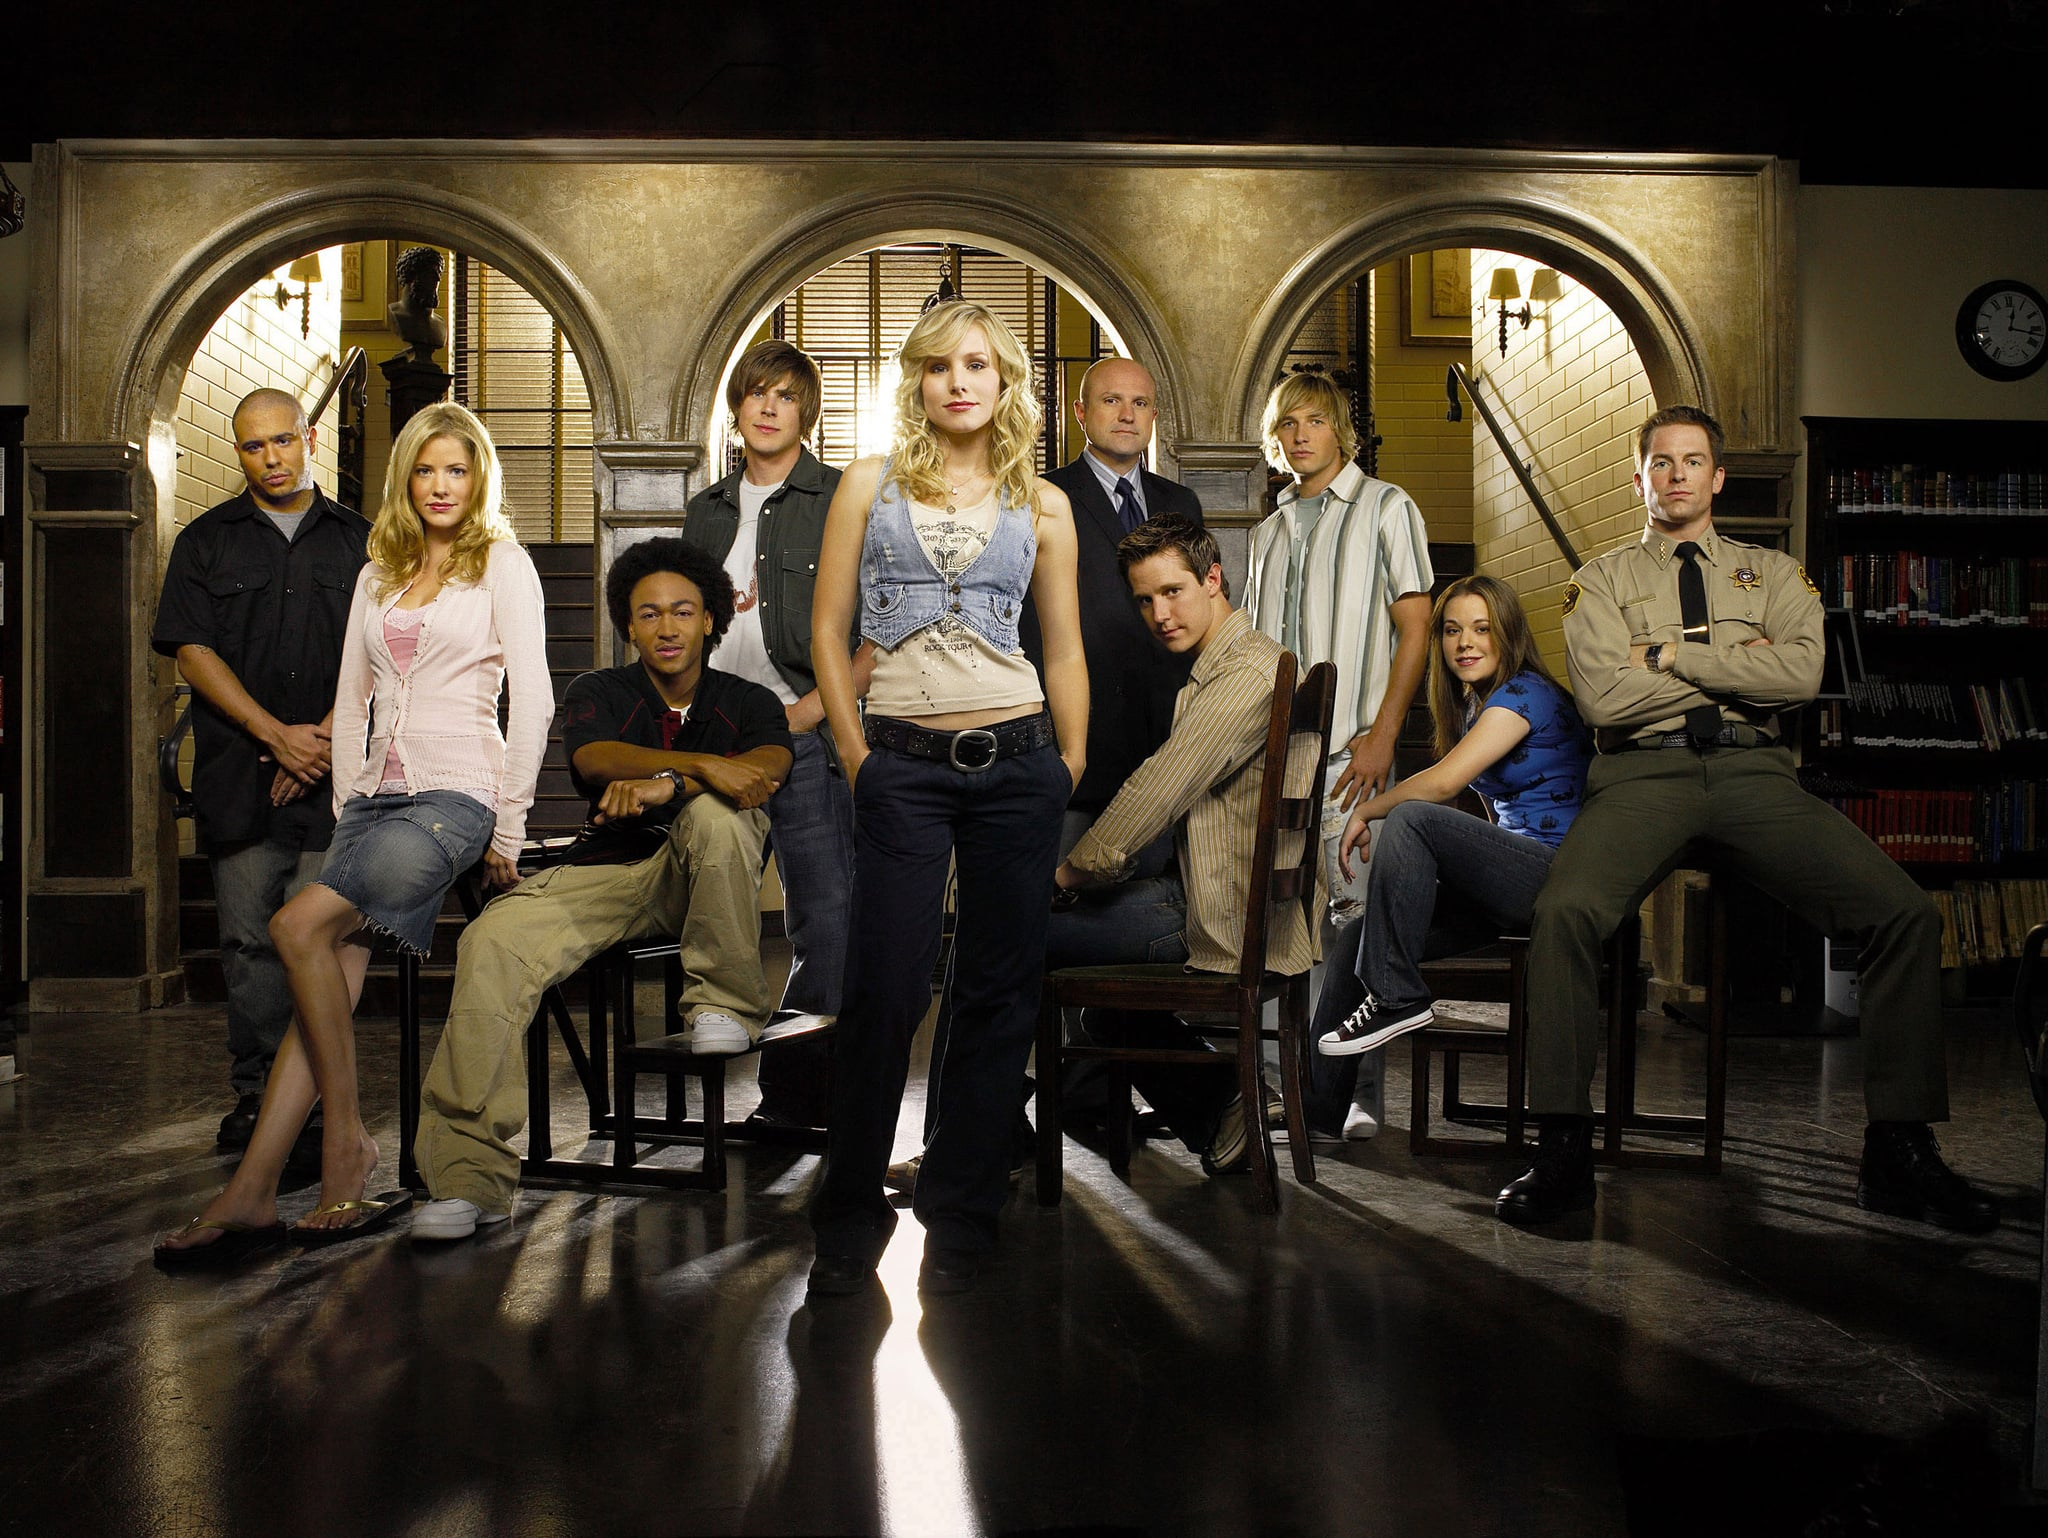 VERONICA MARS, Francis Capra, Julie Gonzalo, Percy Daggs III, Chris Lowell, Kristen Bell, Enrico Colantoni, Jason Dohring, Ryan Hansen, Tina Majorino, Michael Muhney, (Season 3), 2004-07. photo: Patrick Ecclesine /  Warner Bros. Television / Courtesy Everett Collection